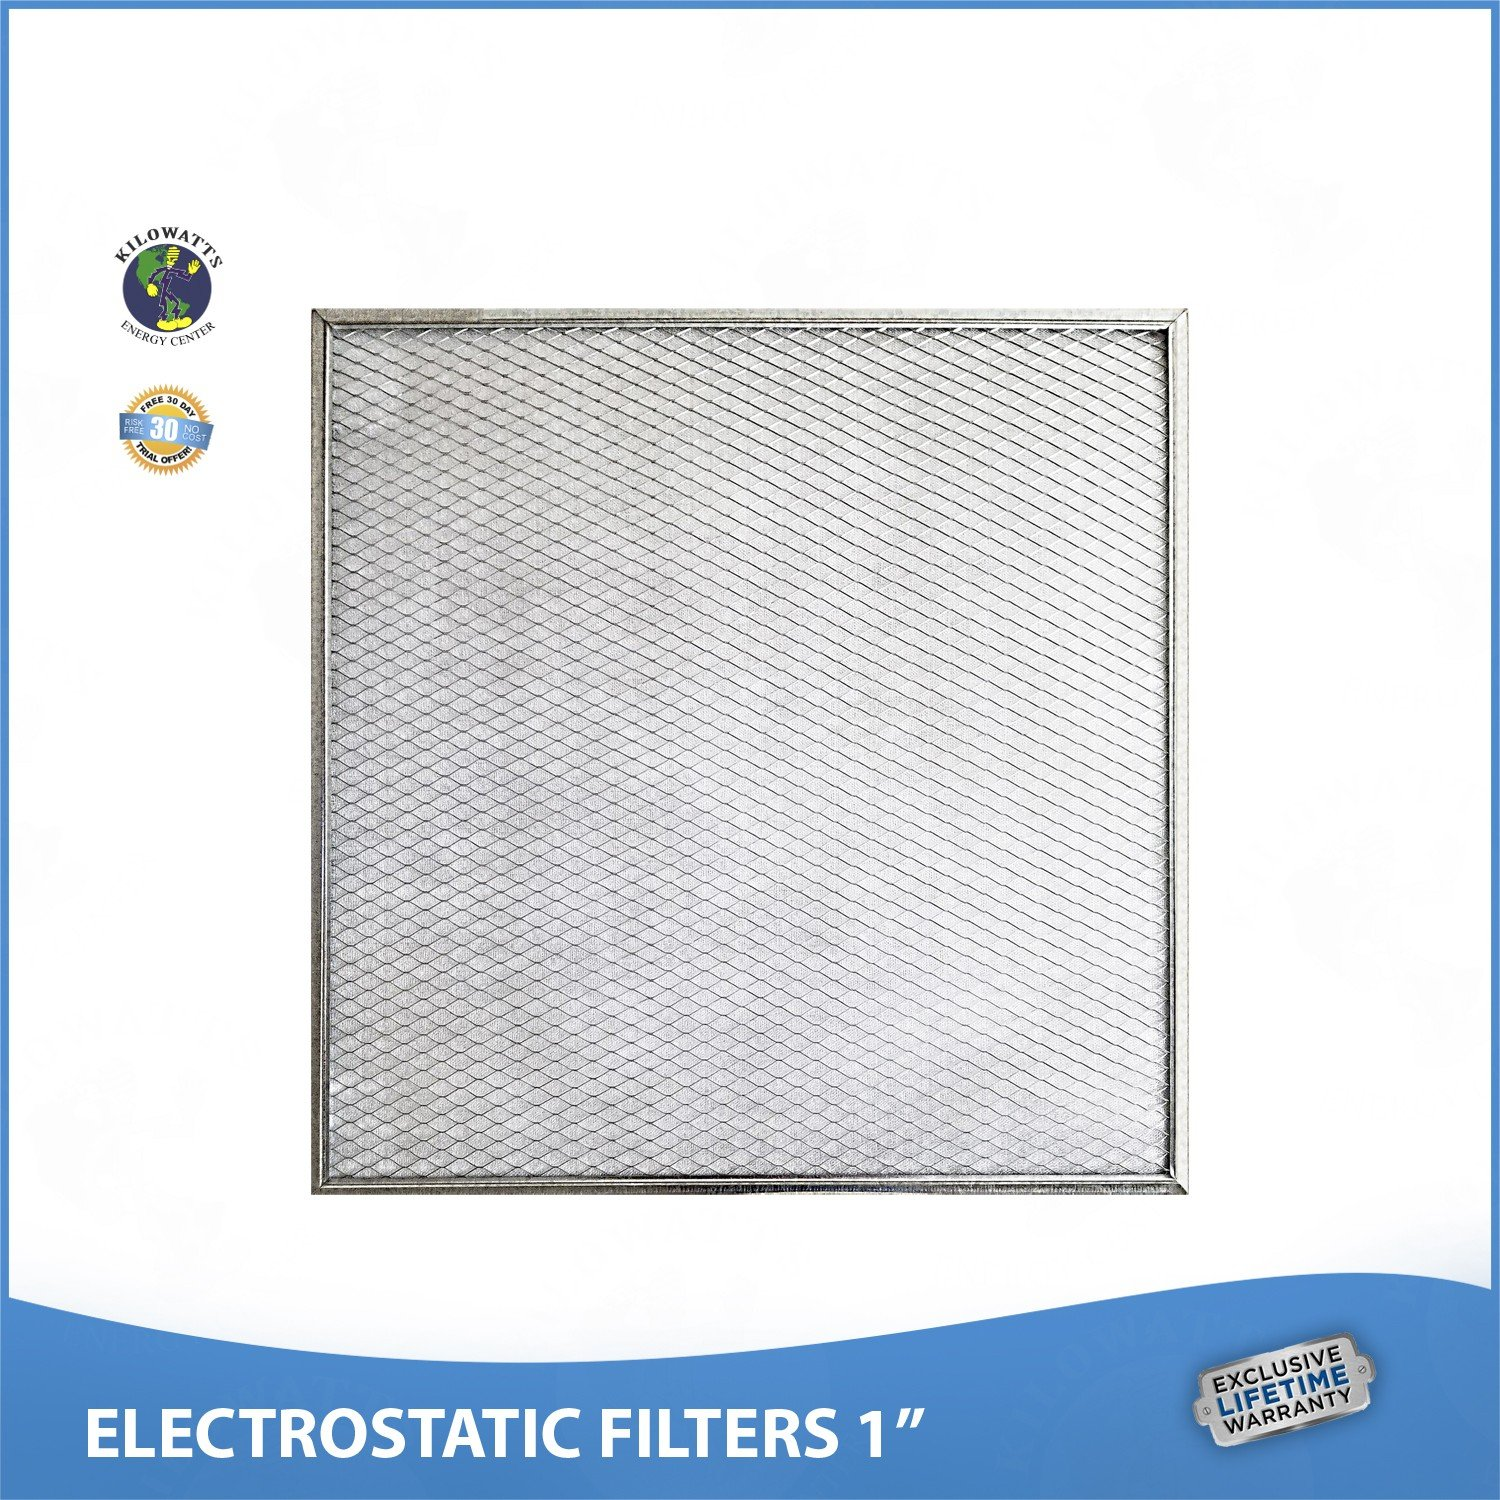 23-1/8 x 19-3/8 x 1 Lifetime Air Filter - Electrostatic Washable Permanent A/C Silver Steel Frame 94% Arrestance